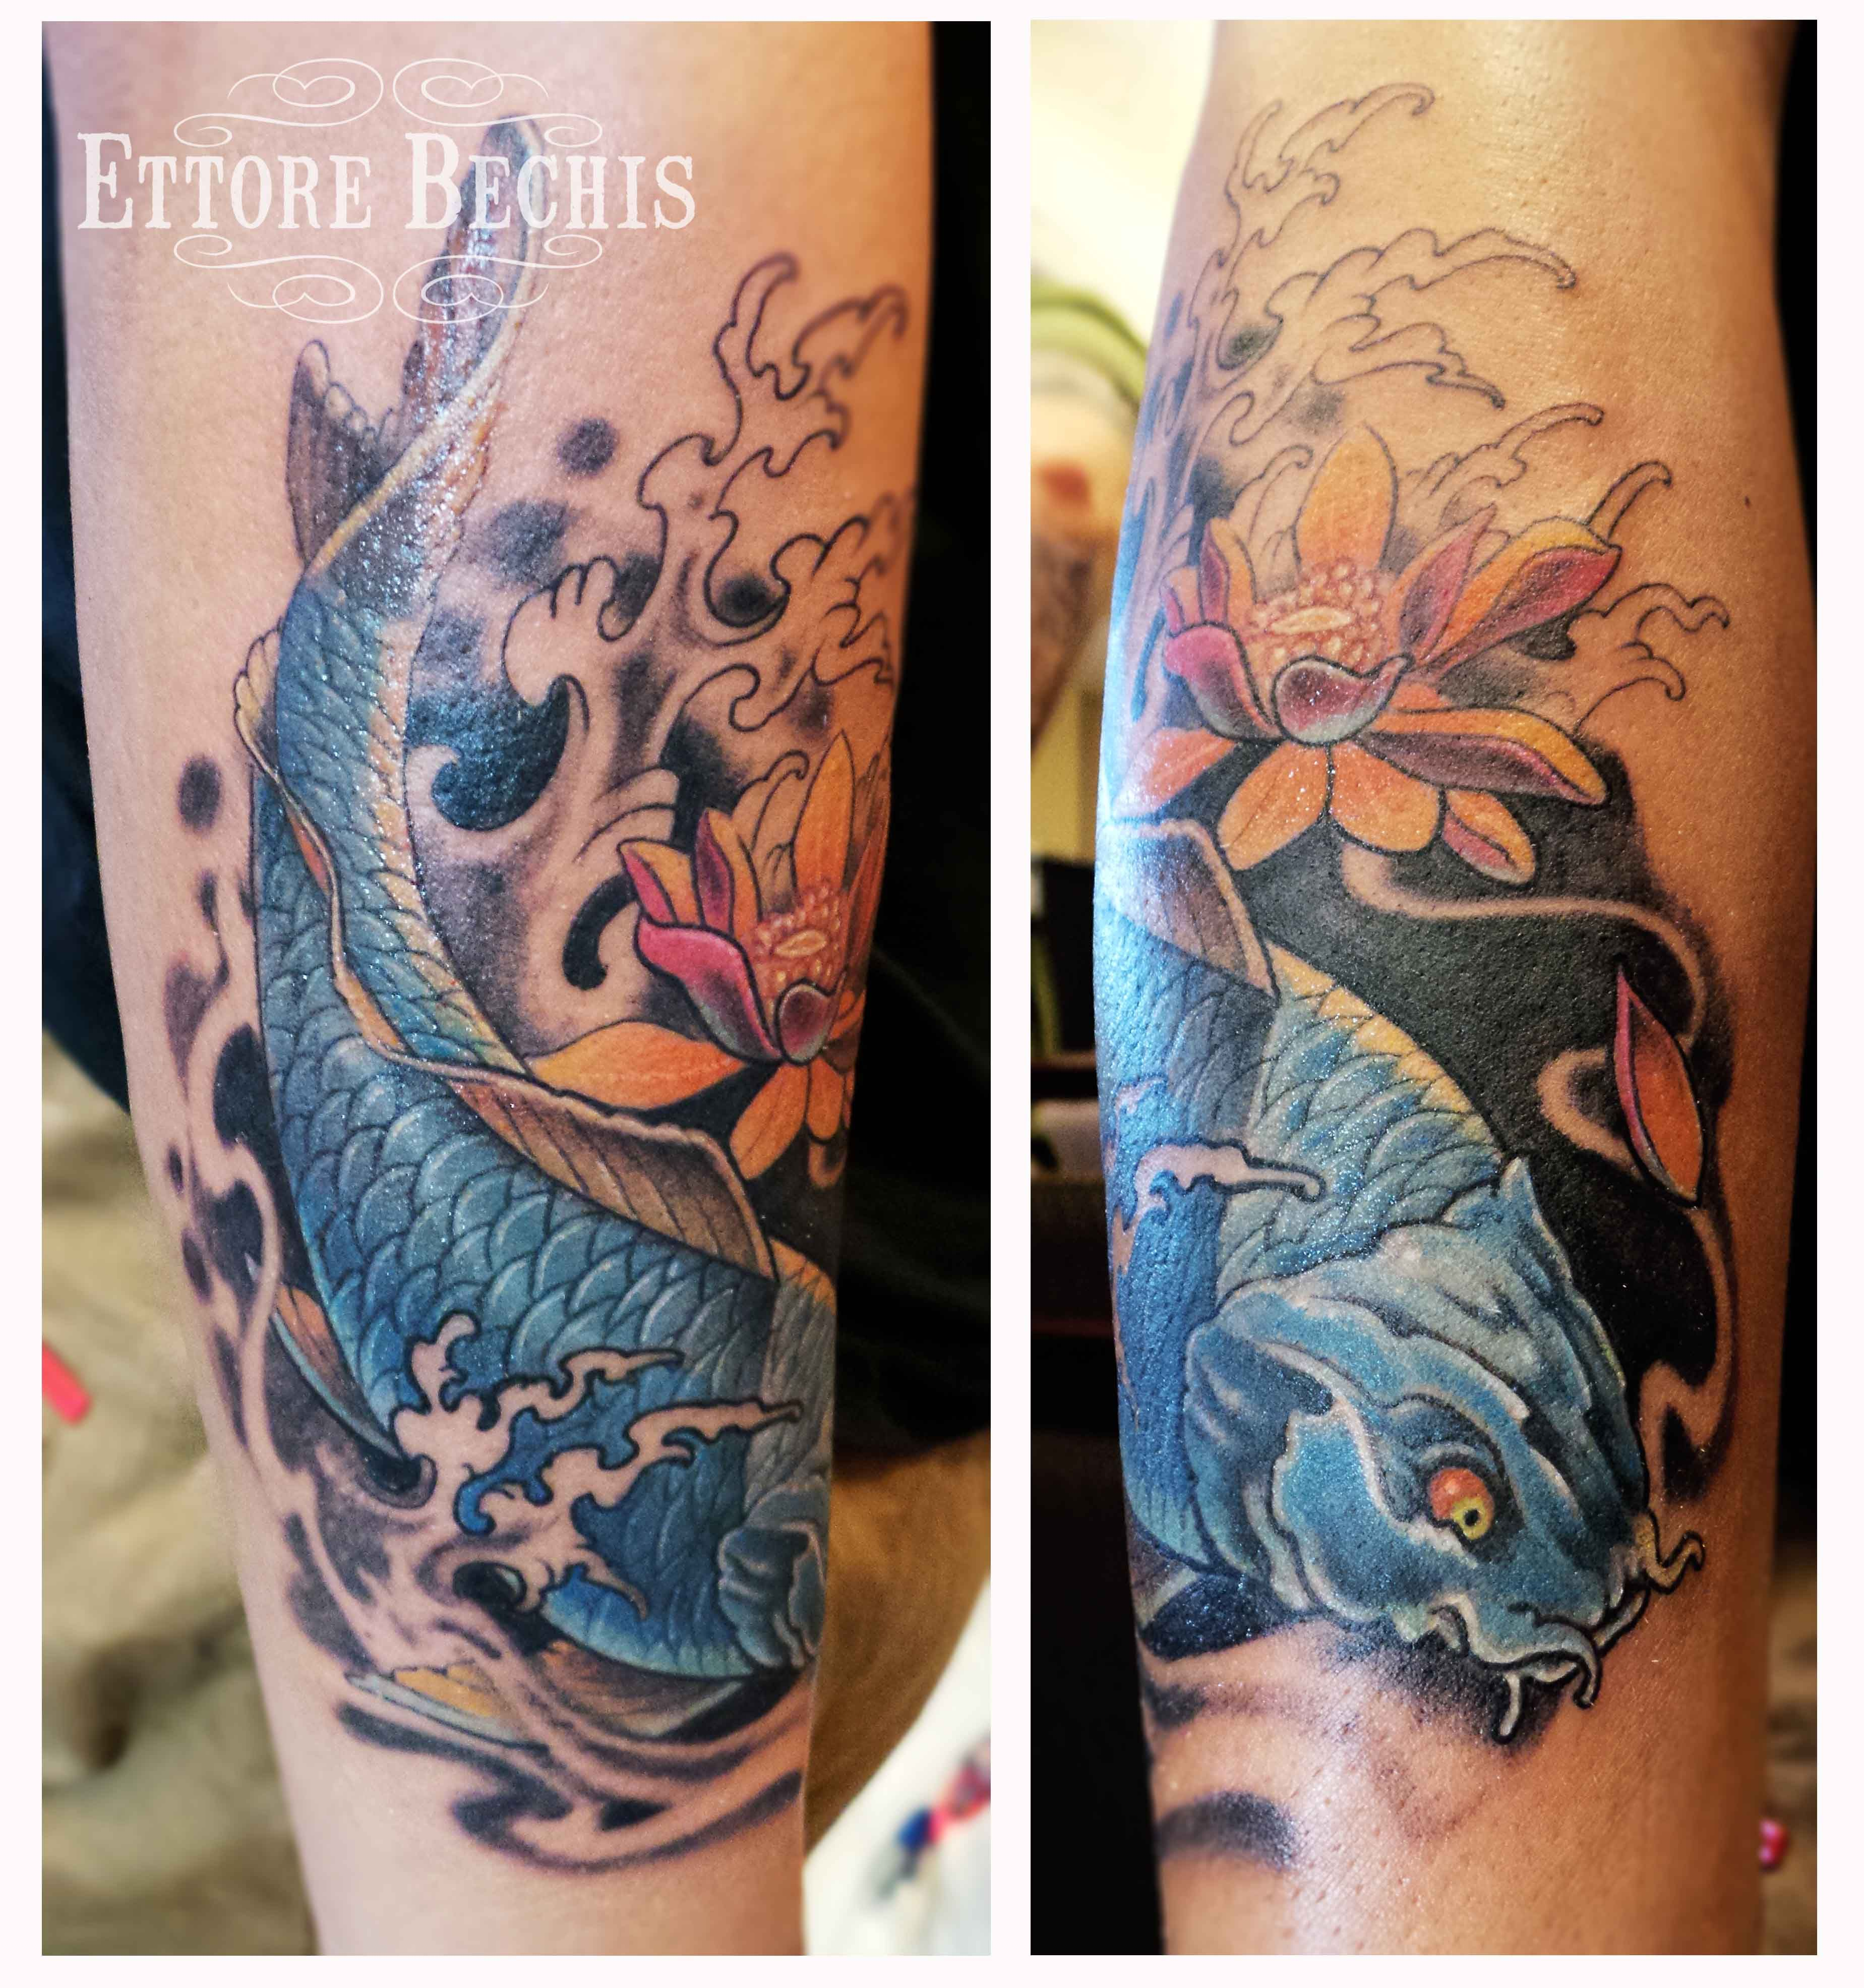 www.ettore-bechis.com Best Miami tattoo shop koi,fish,blue,waves ...